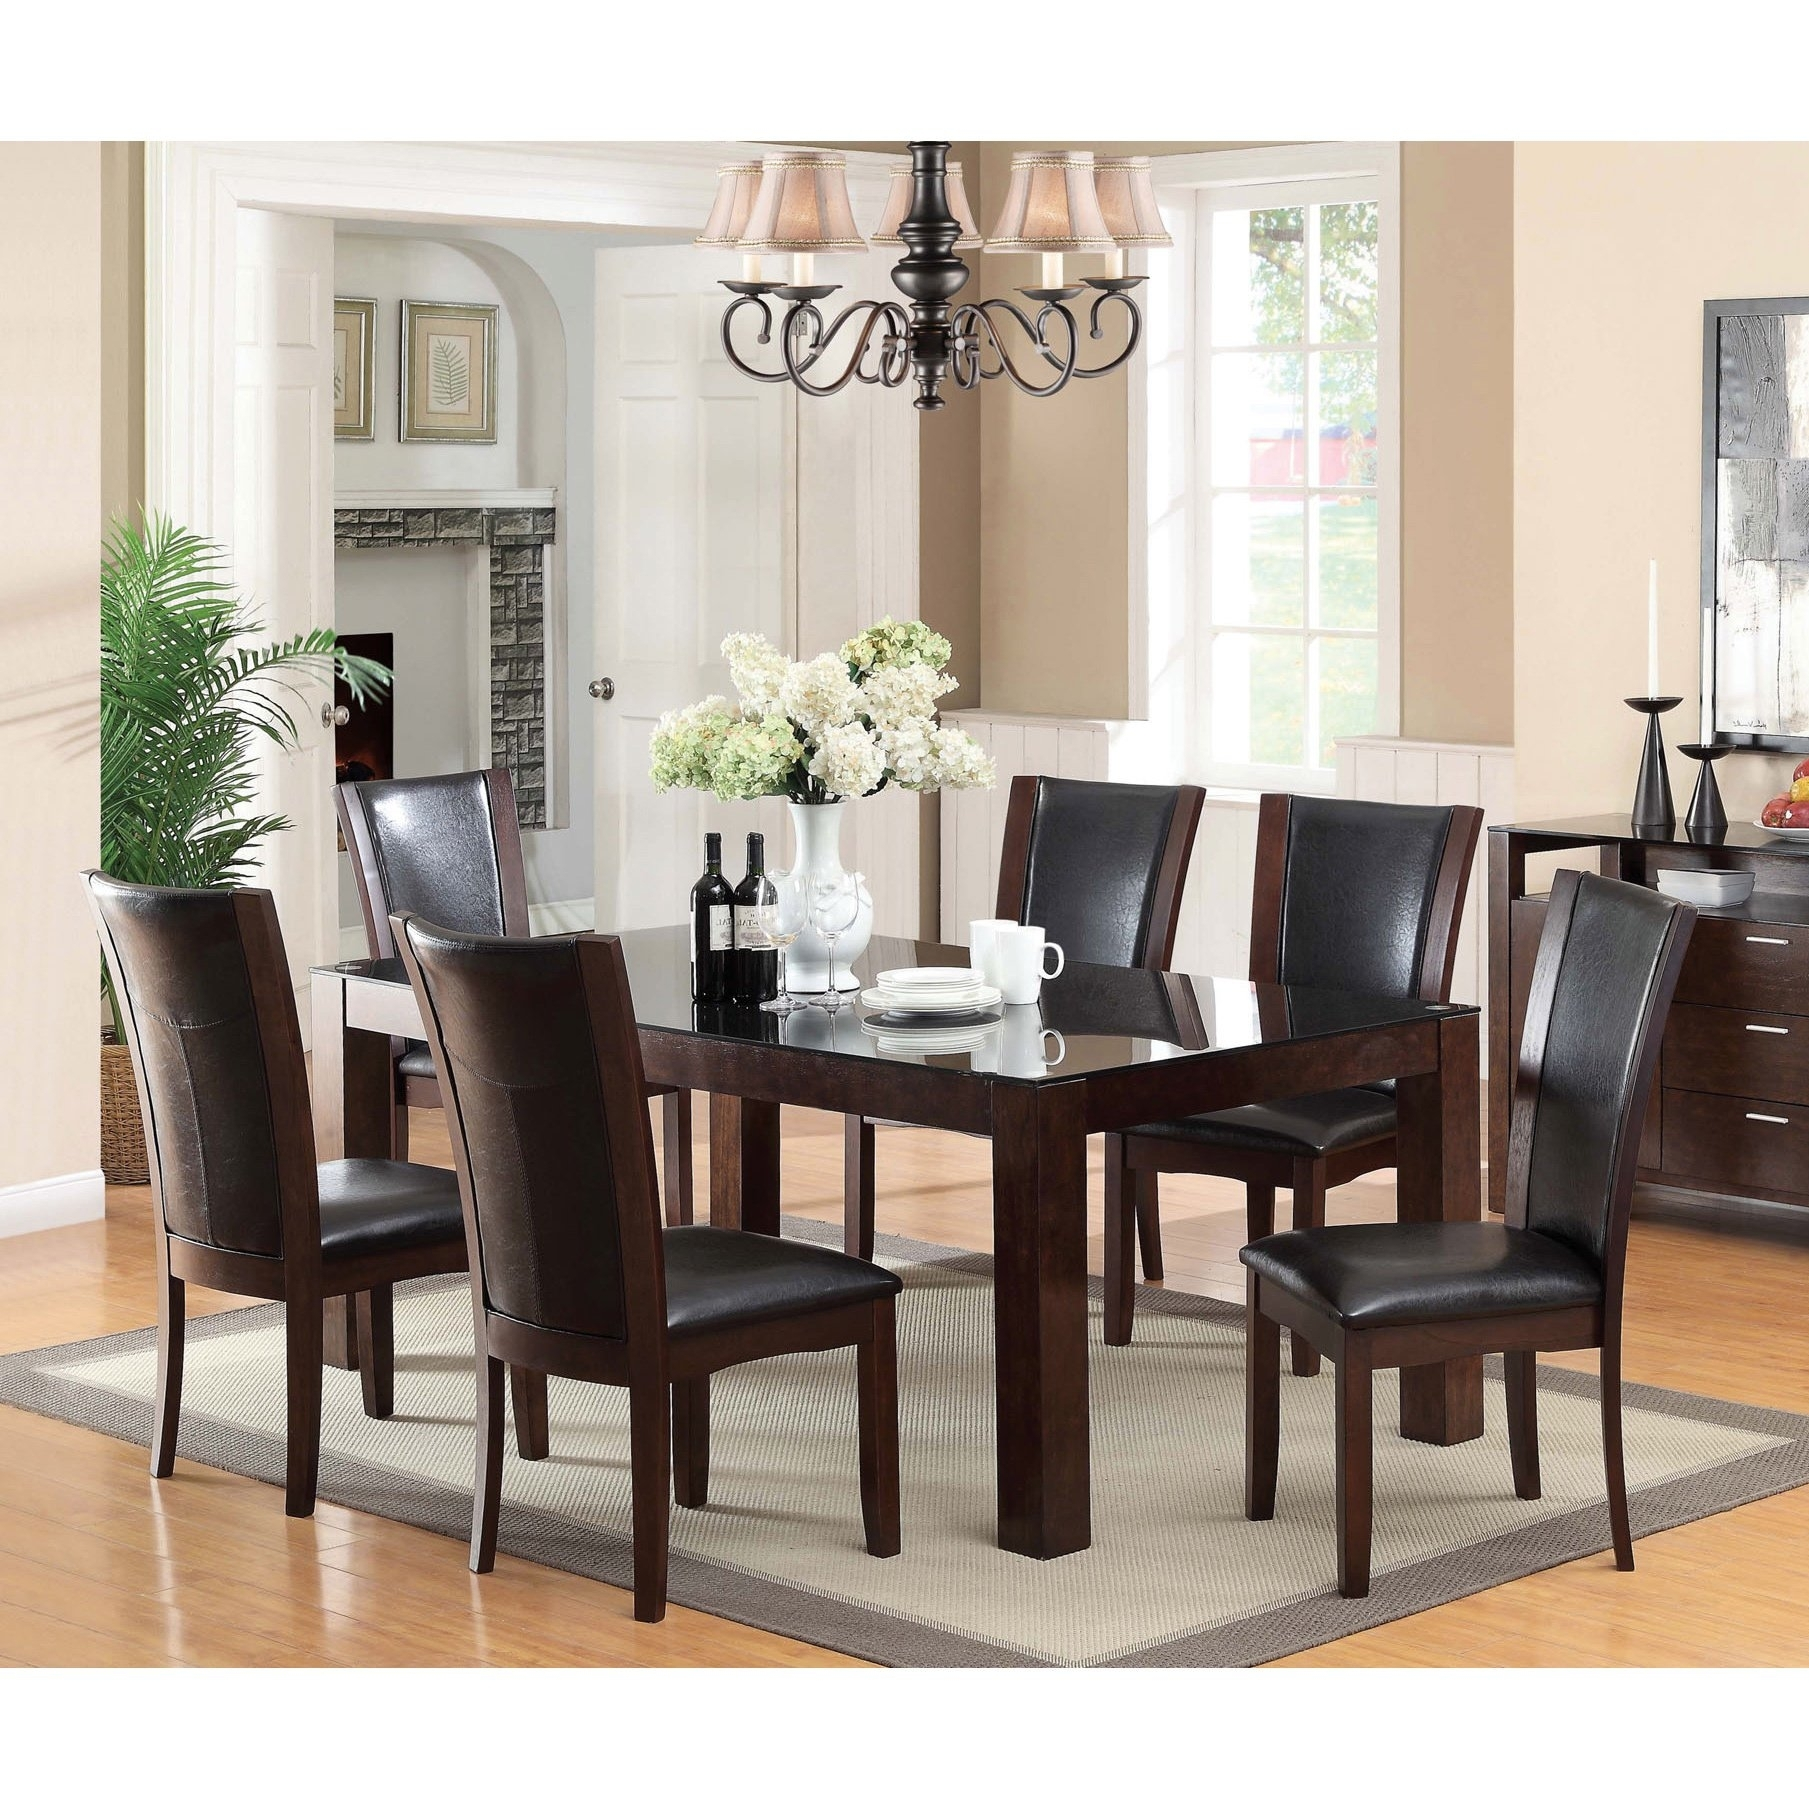 Furniture Of America Byzantia 7 Piece Tempered Glass Dining Set Throughout Most Recent Gavin 7 Piece Dining Sets With Clint Side Chairs (Image 3 of 20)